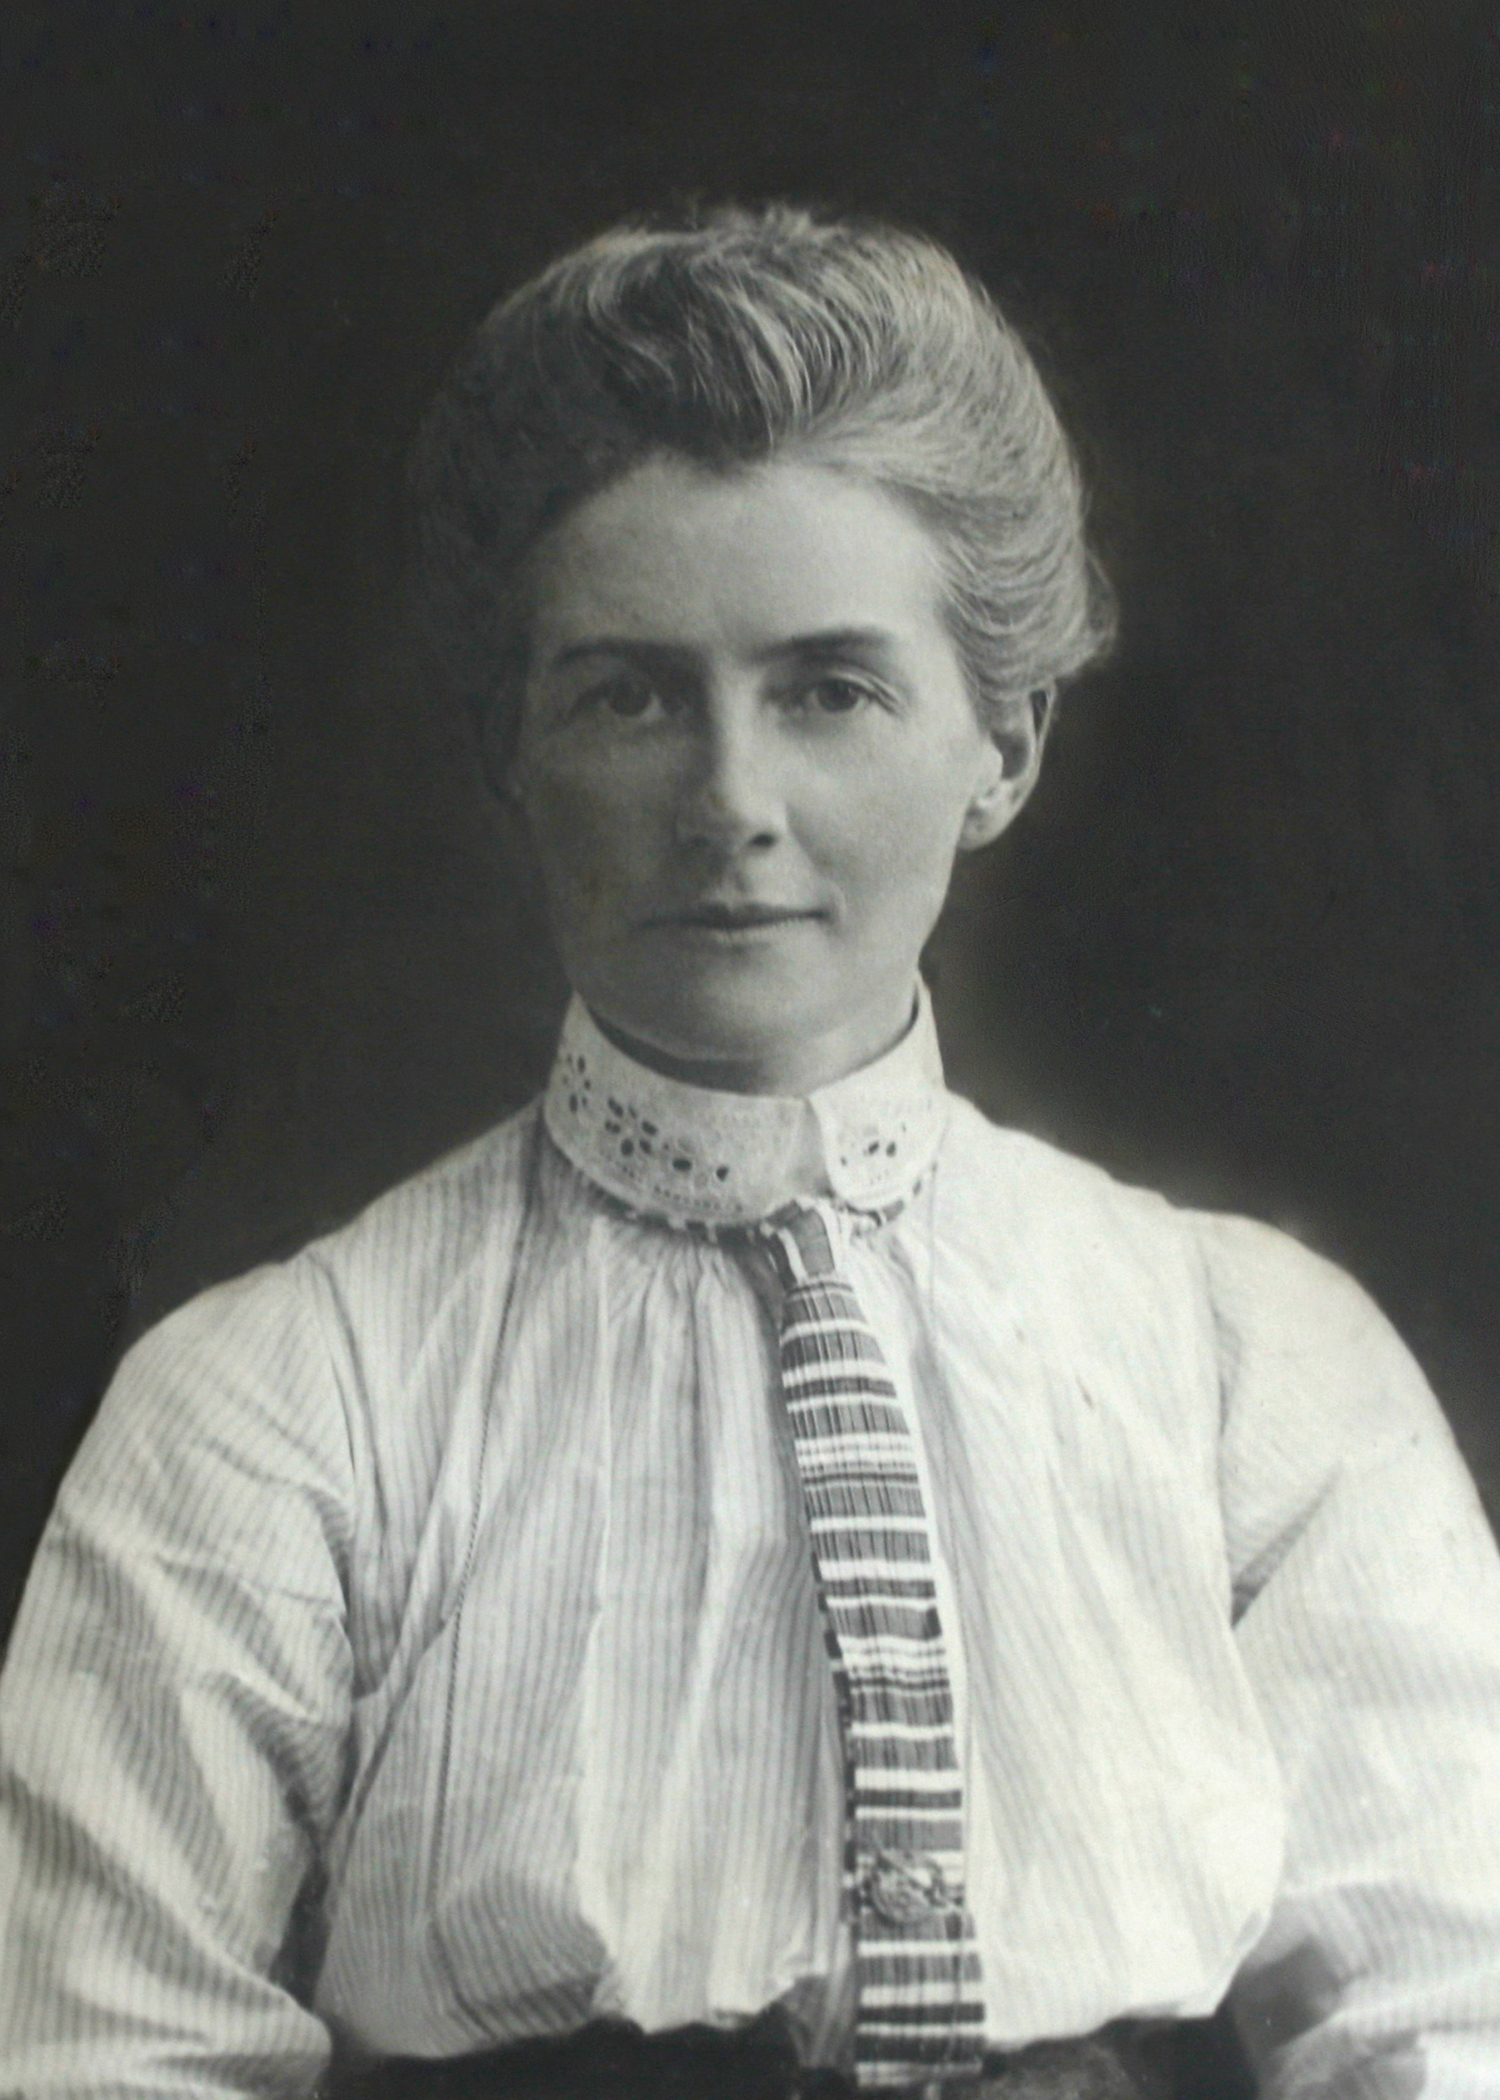 File:Edith Cavell.jpg